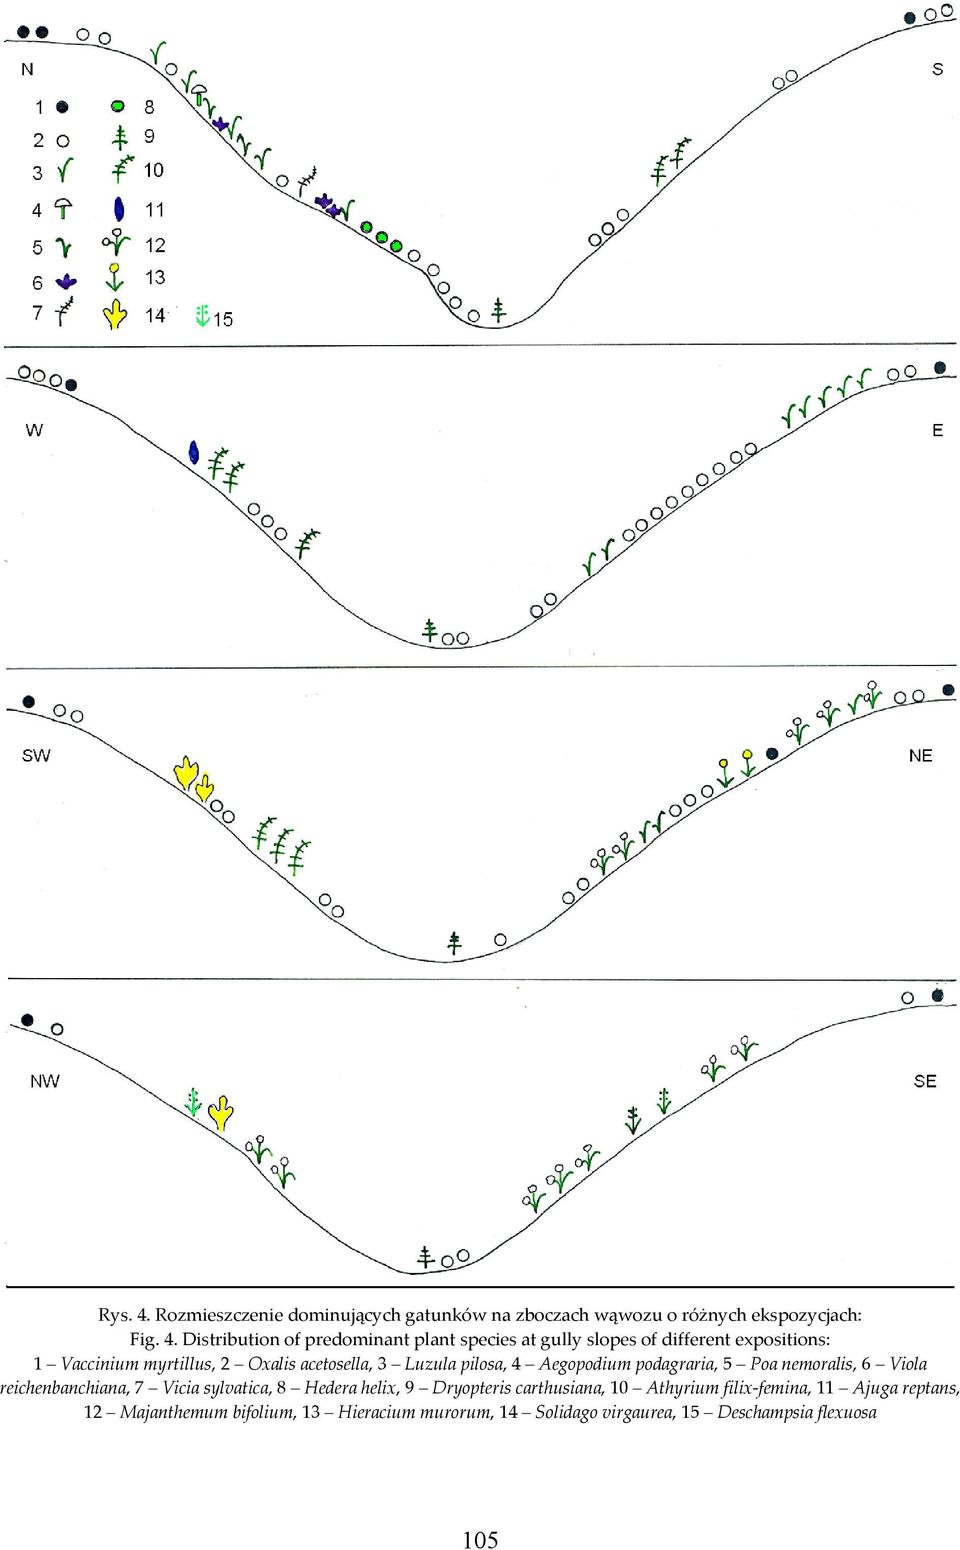 Distribution of predominant plant species at gully slopes of different expositions: 1 Vaccinium myrtillus, 2 Oxalis acetosella,